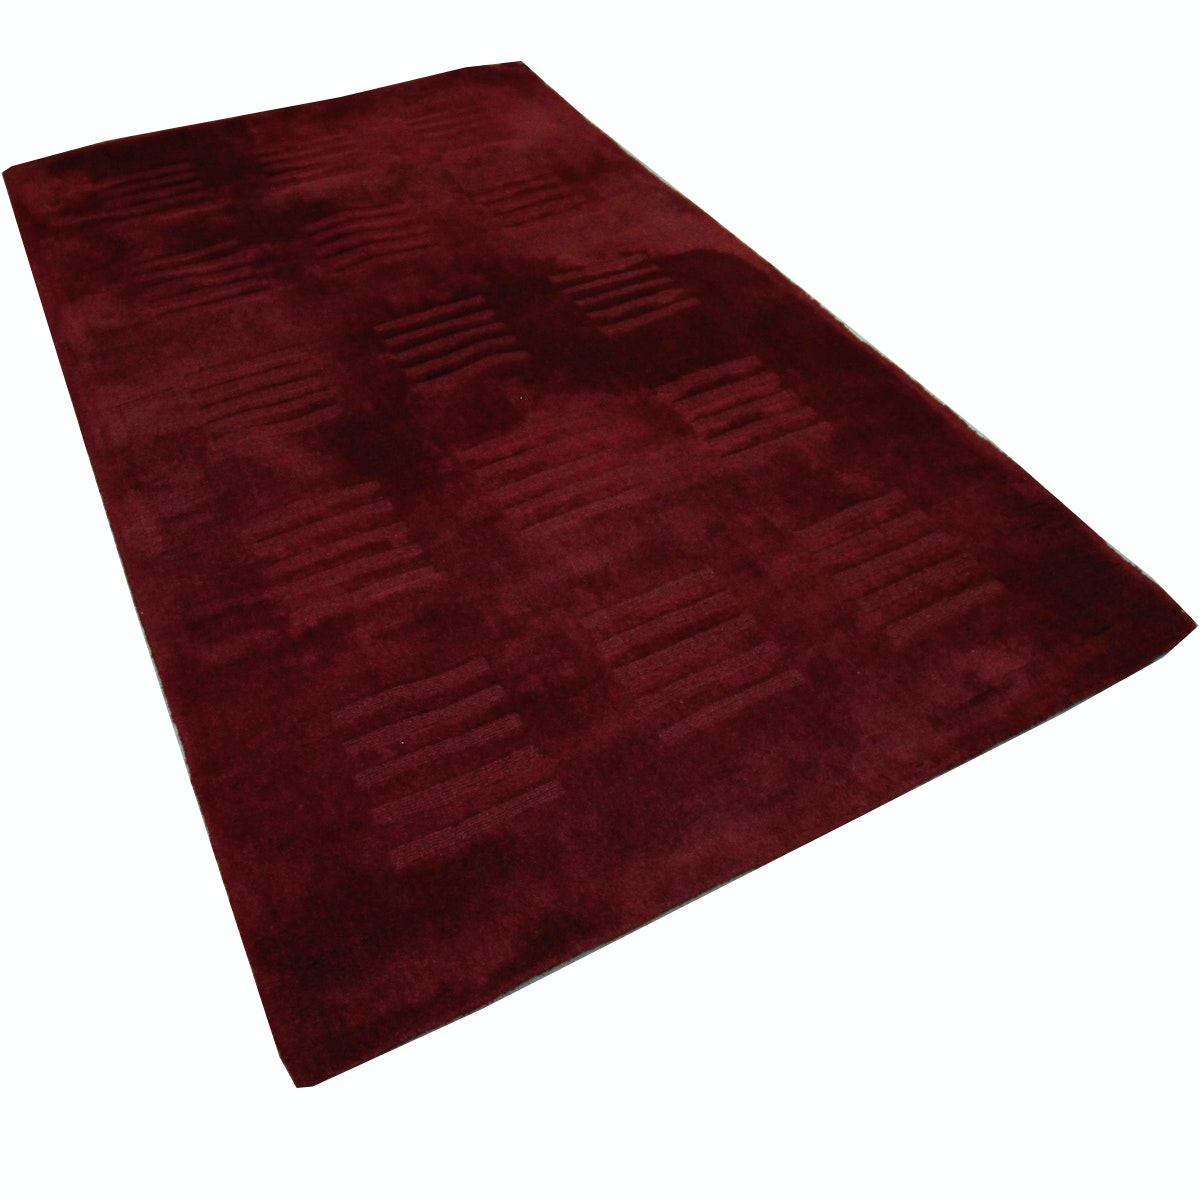 Hand Tufted Contemporary Indian Wool Area Rug